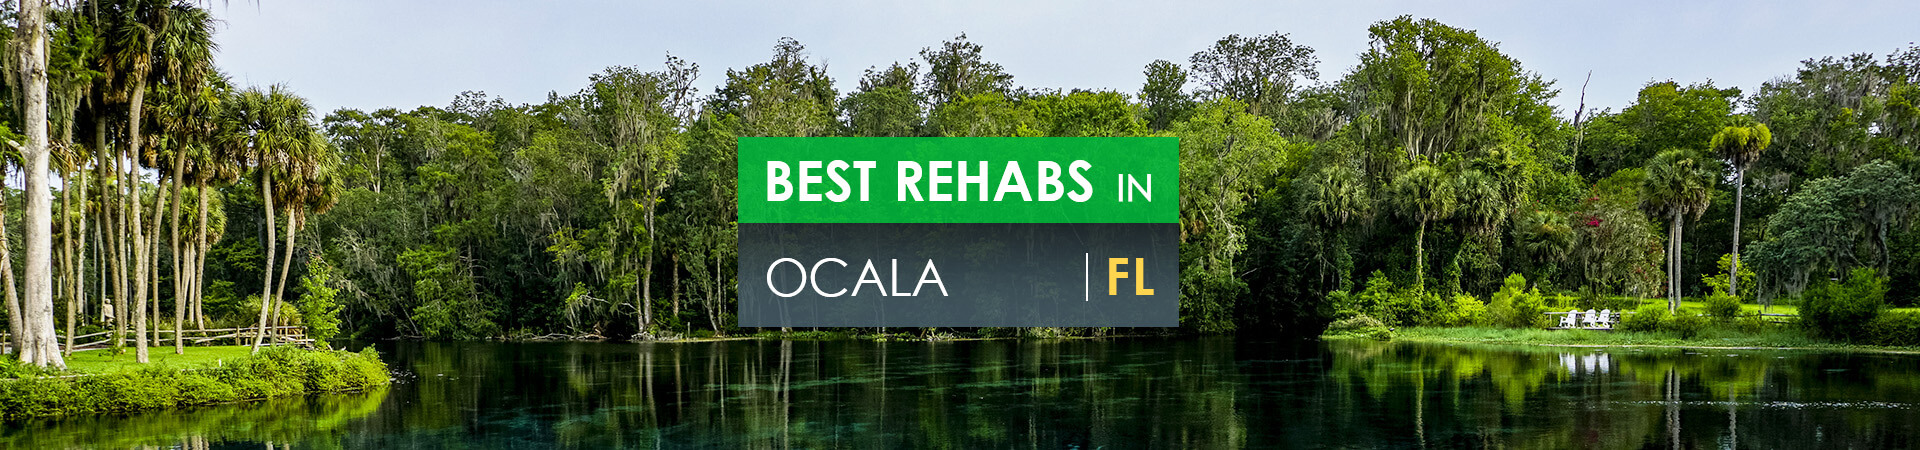 Best rehabs in Ocala, FL